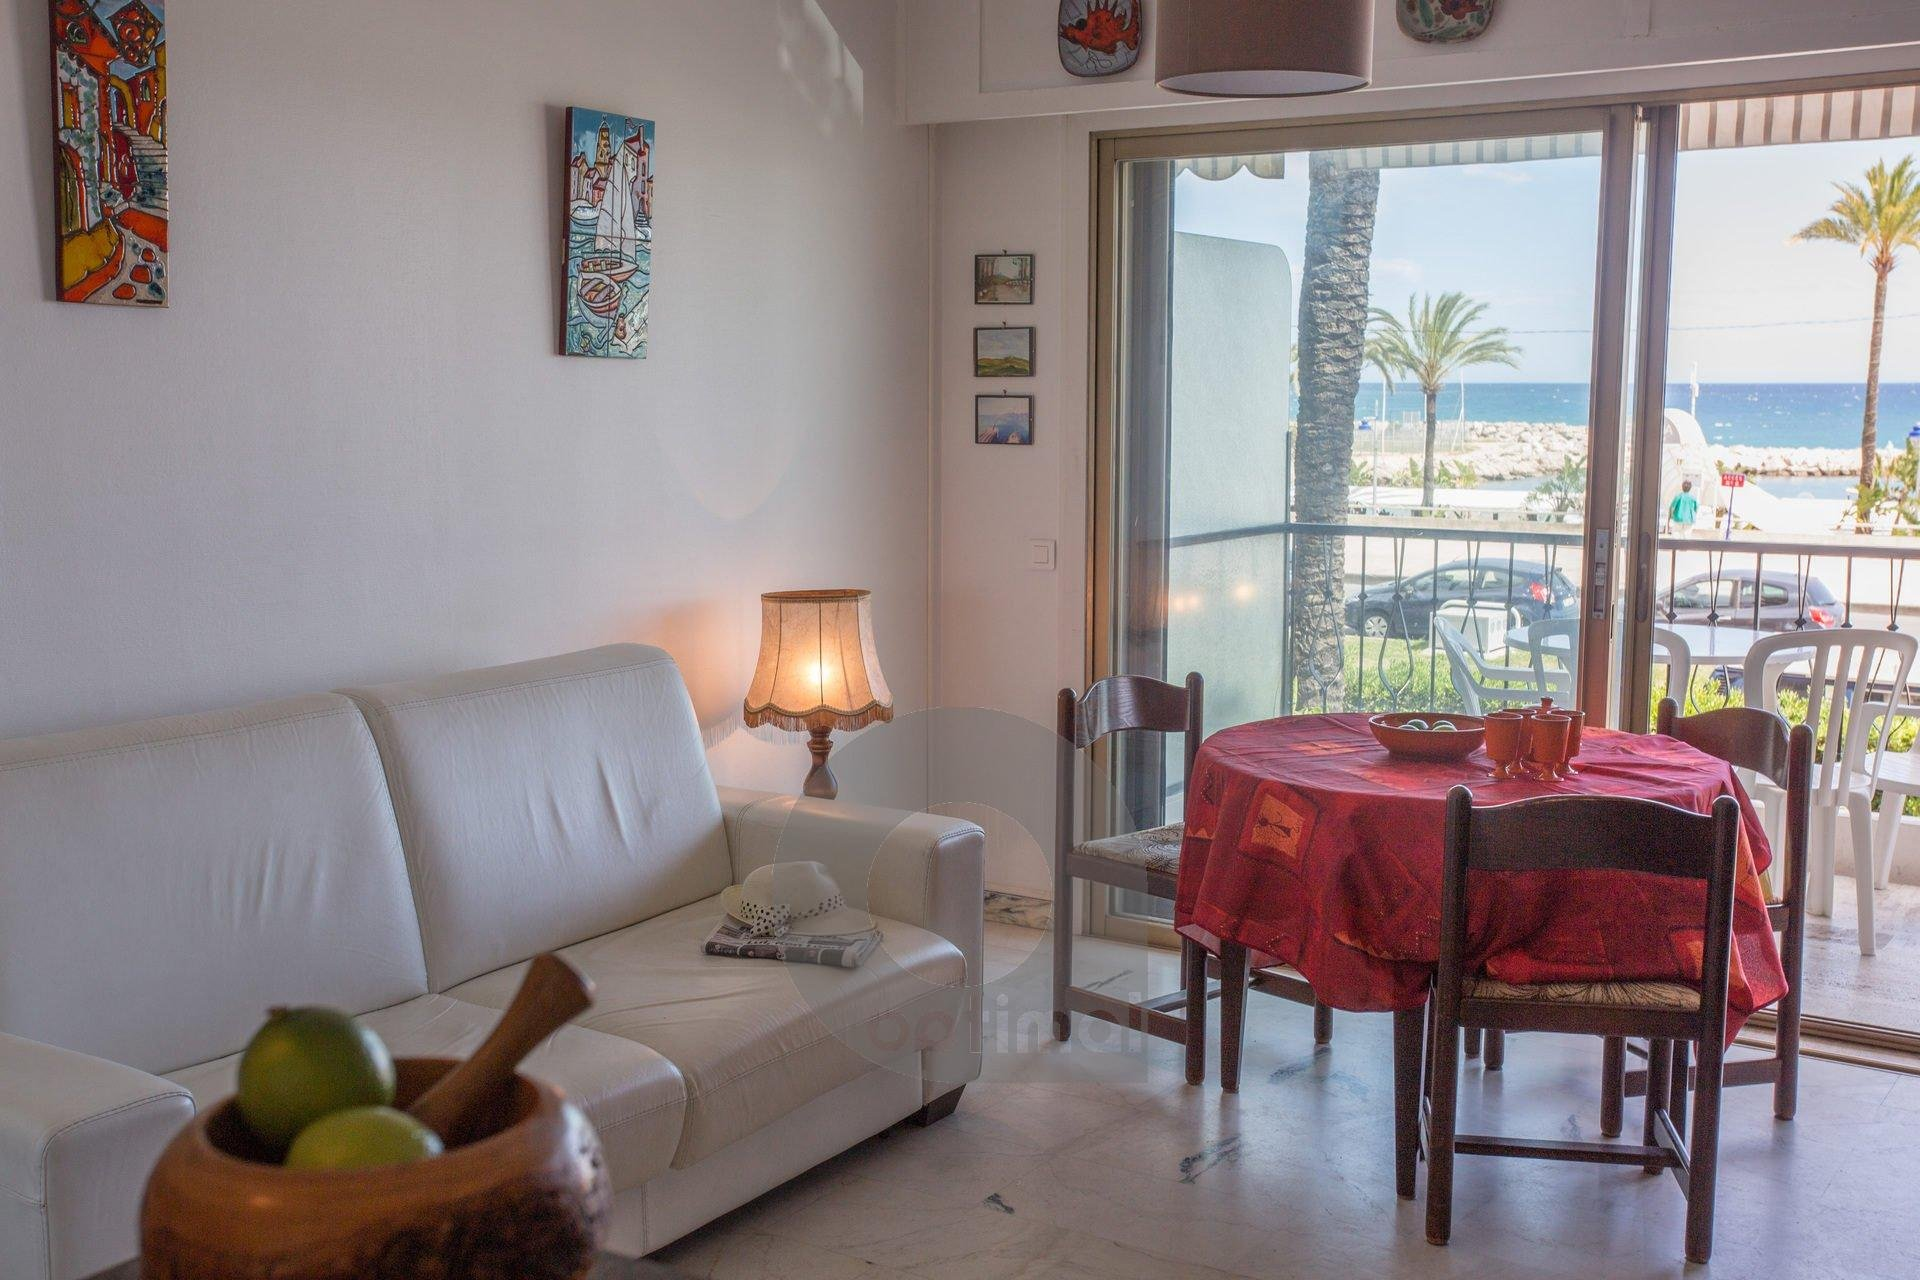 Beautiful studio with terrace in front of the sea close to the beach